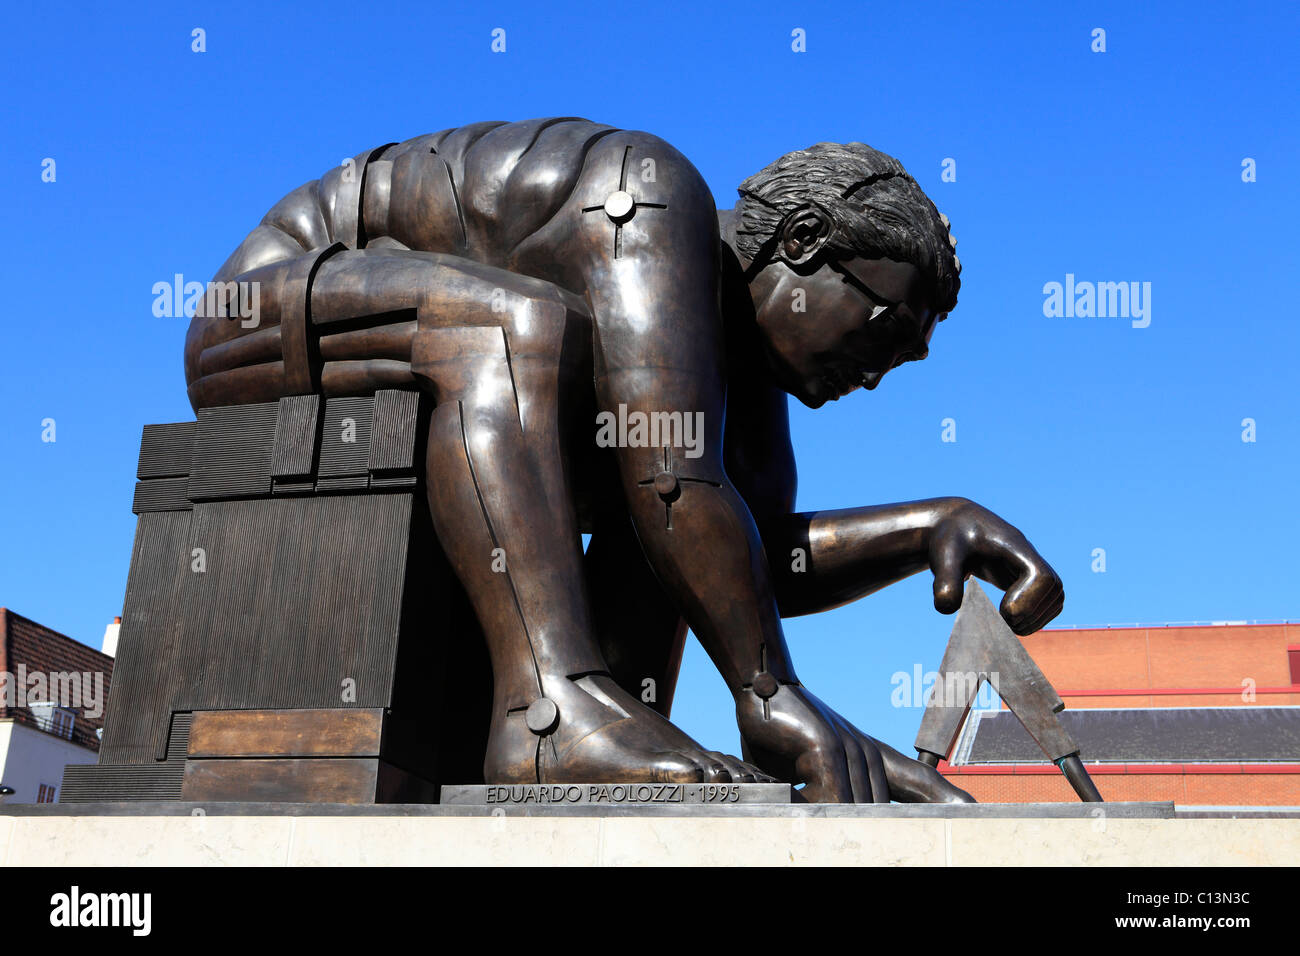 united kingdom london euston road the british library statue of sir isaac newton - Stock Image